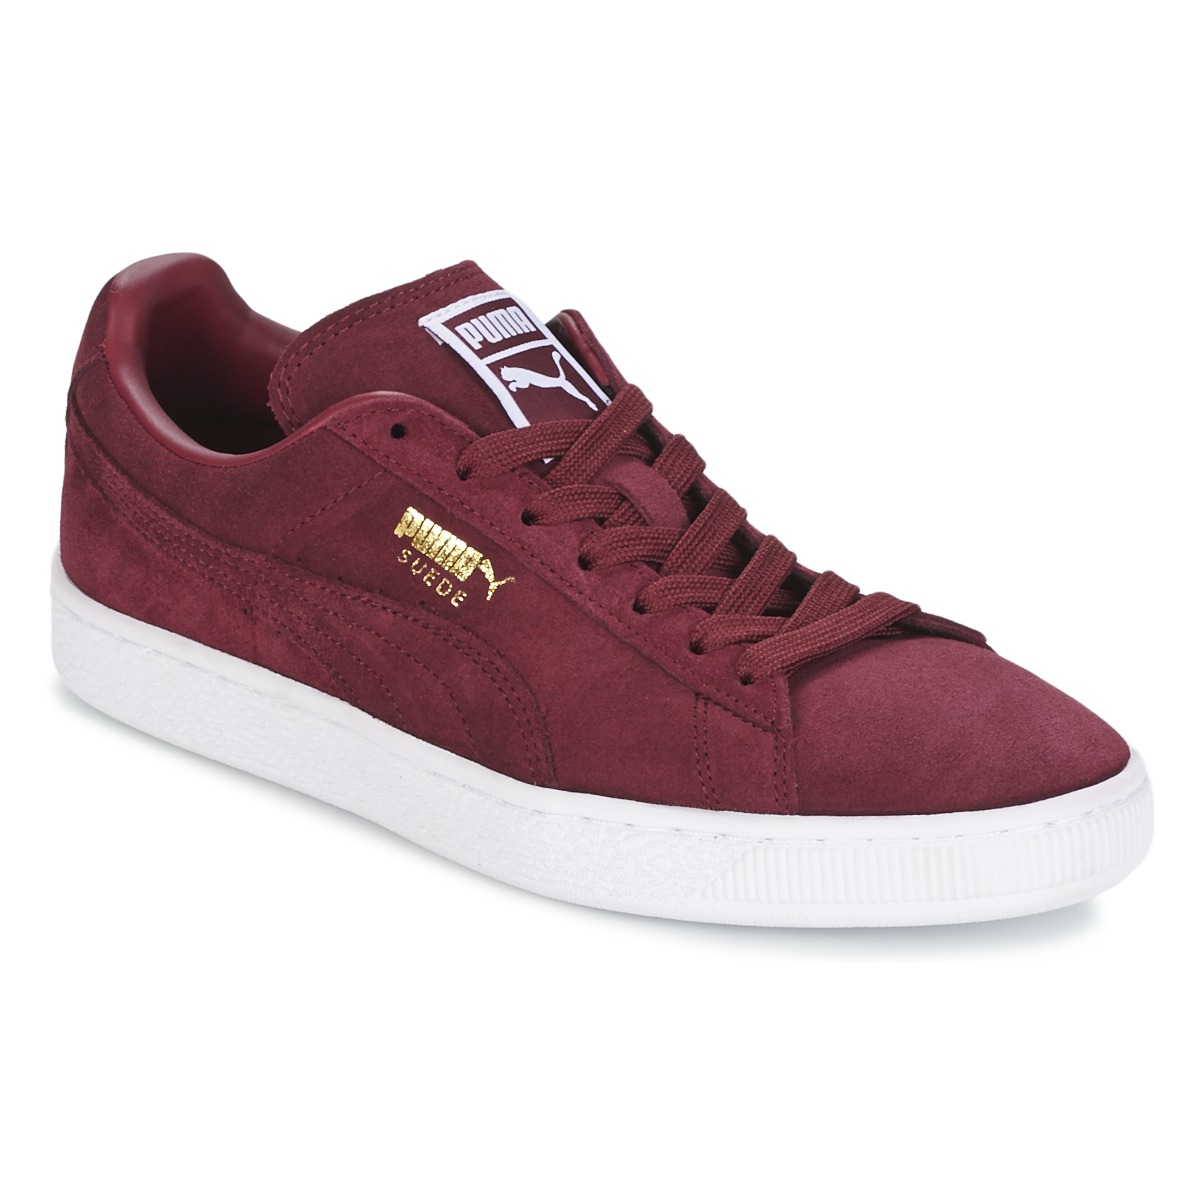 Puma SUEDE CLASSIC + Bordeaux - Free delivery with Spartoo NET ! - Shoes  Low top trainers USD  78.00 65e3b13a4